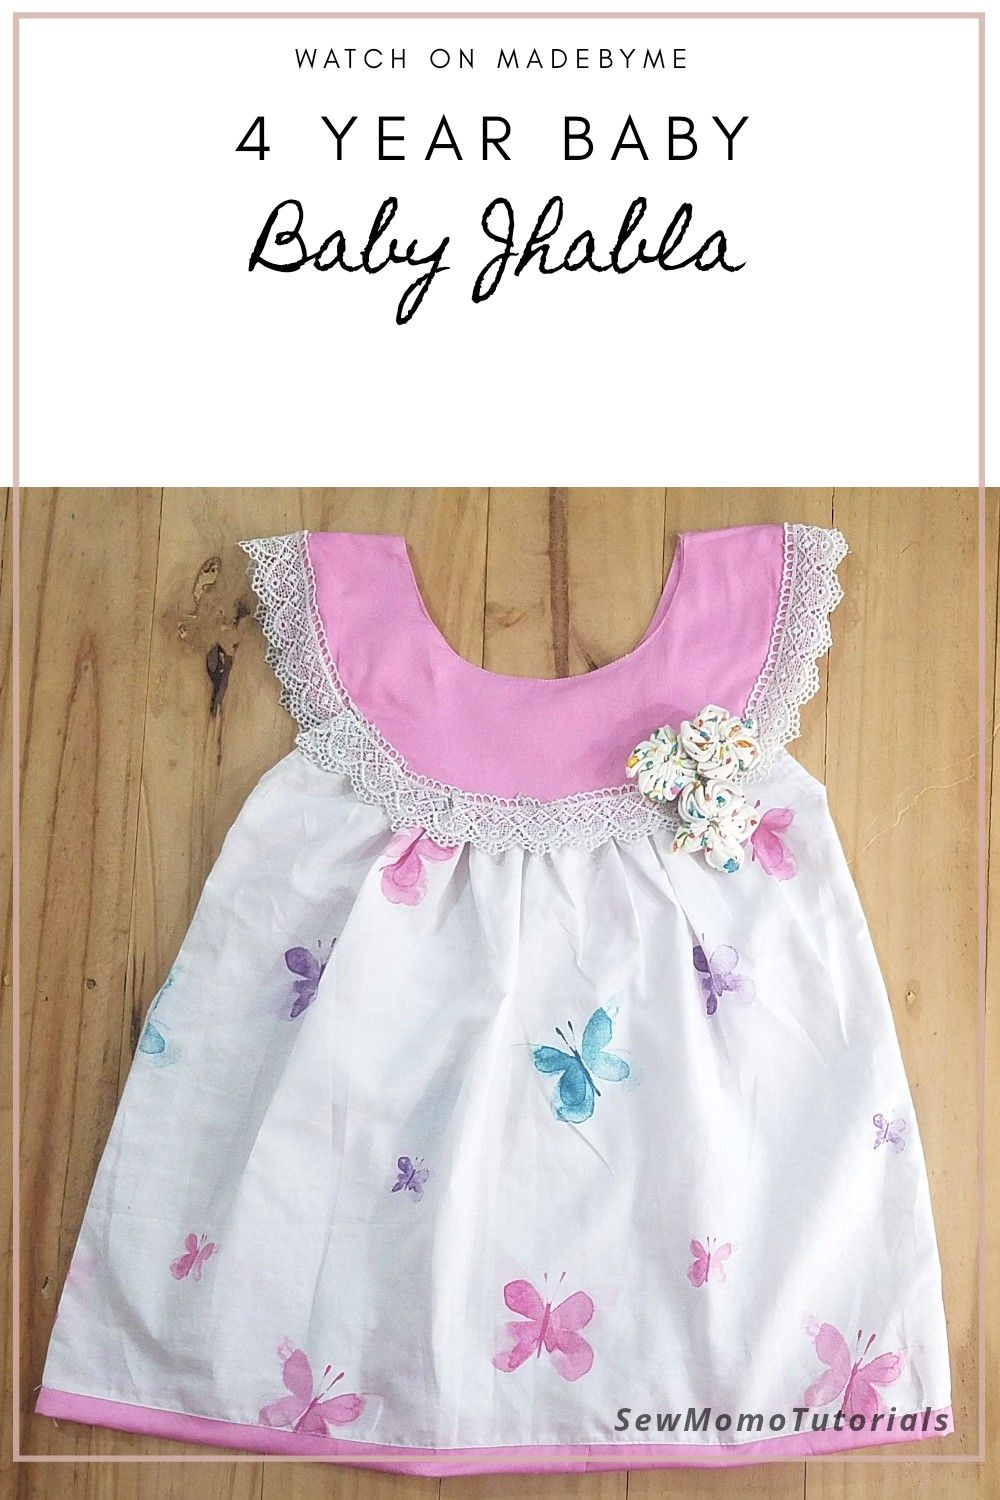 Baby jhabla frock tutorial available on MadebyMe youtube channel #SewMomoBabyFrock #babyfrock #cottonDress